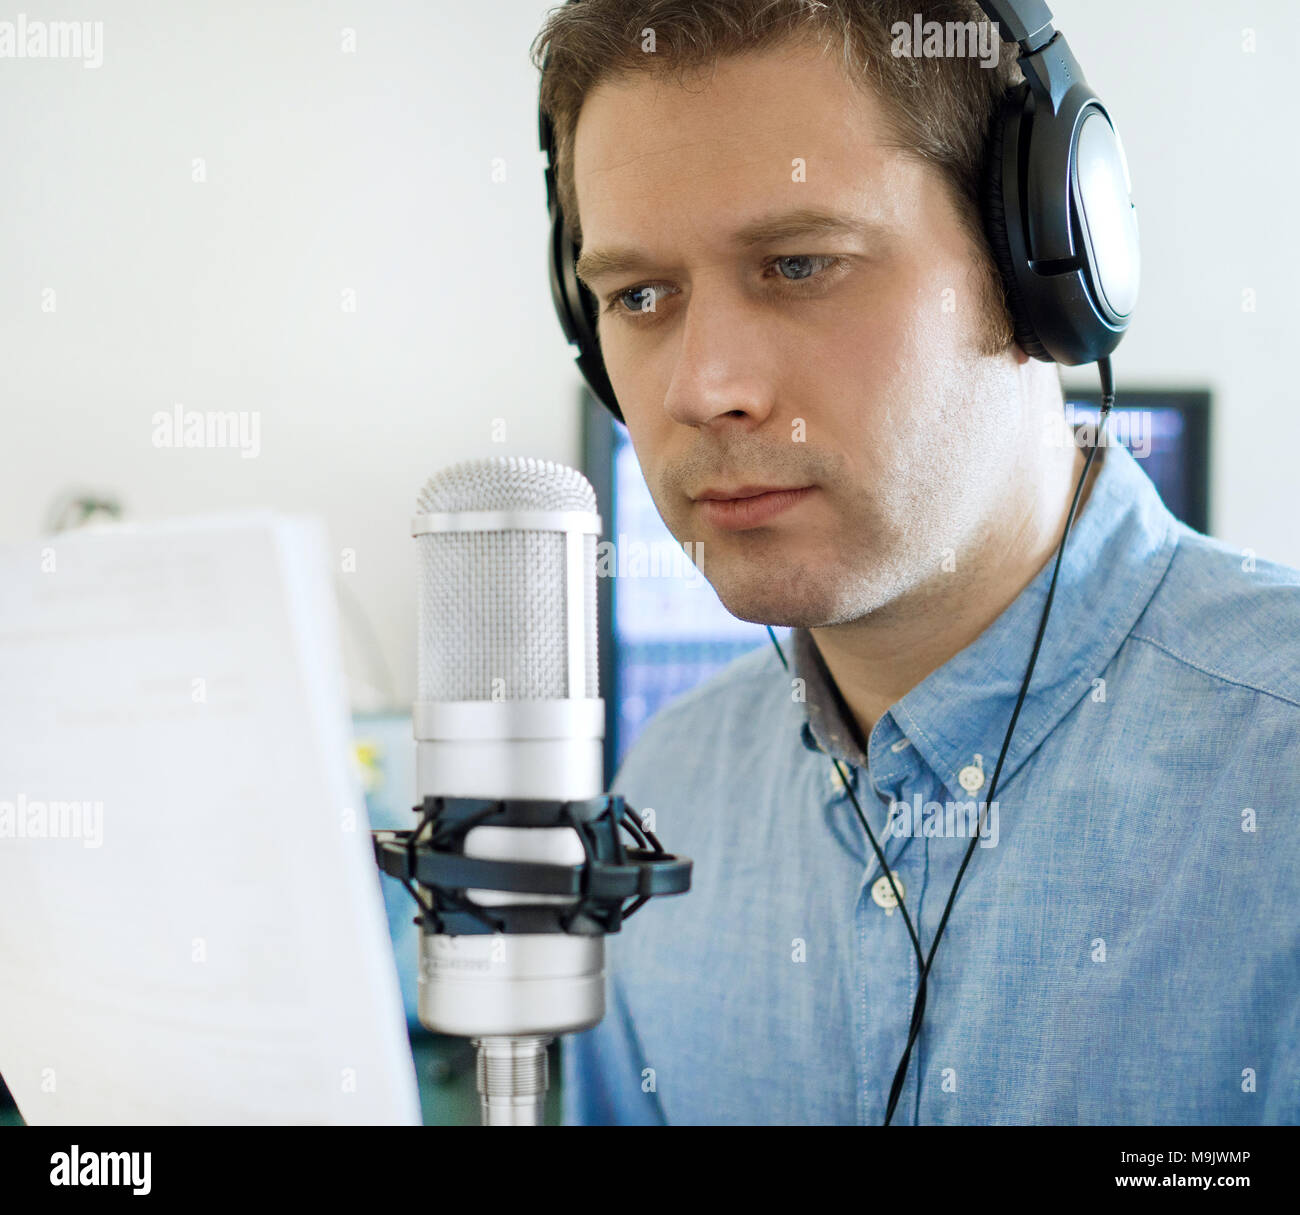 Handsome man recording an advertisement on the radio station. - Stock Image